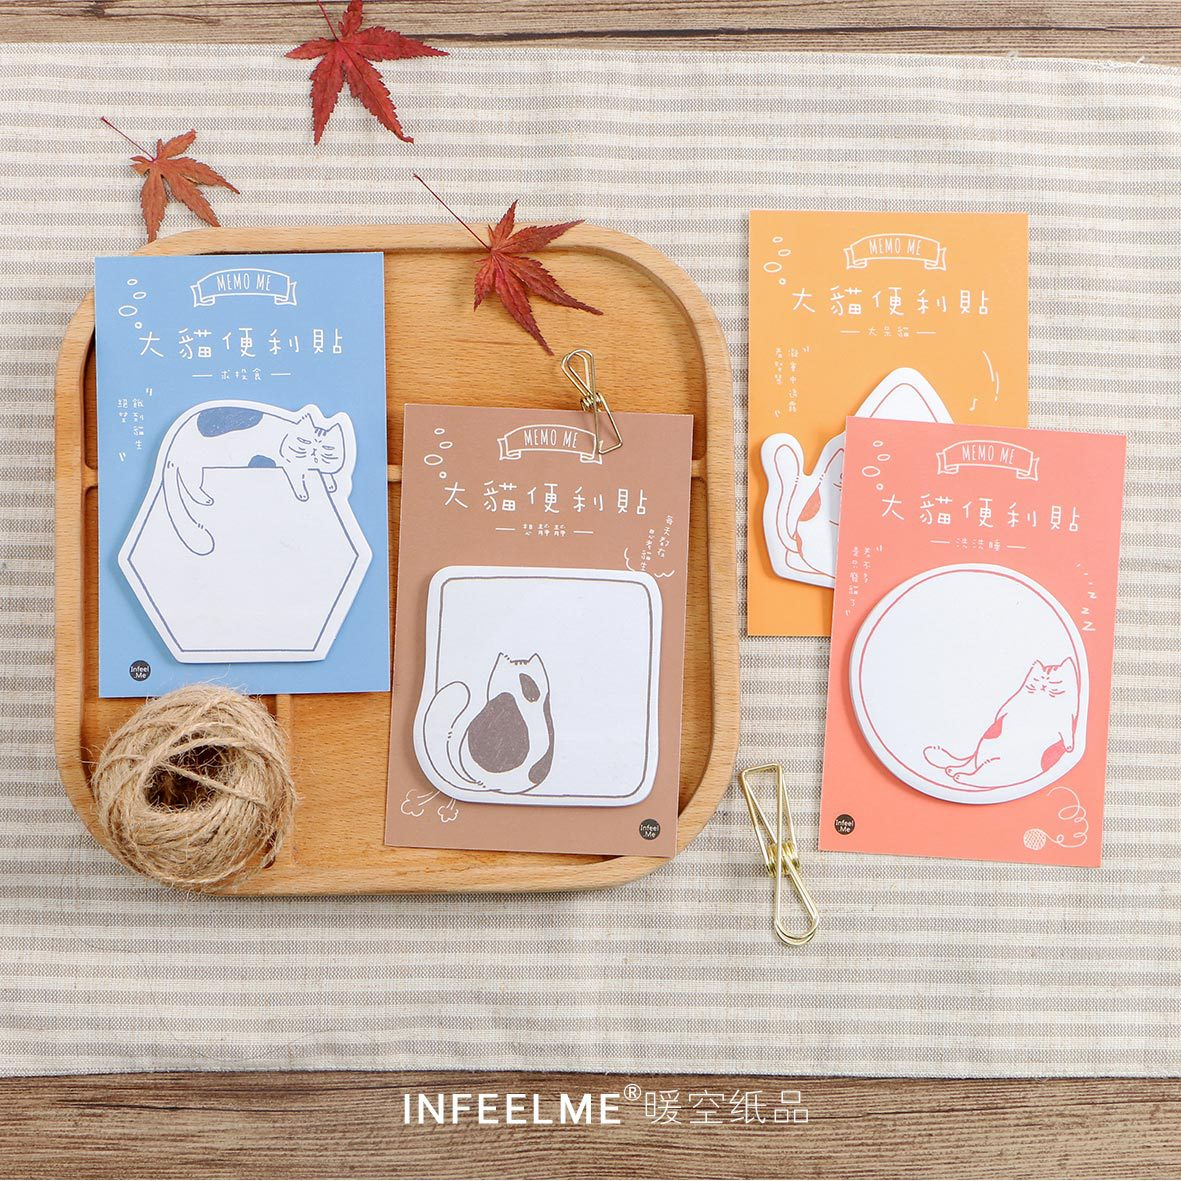 30 Sheets Kawaii Cute Cat Animal Sticky Notes Memo Pad Decoration Stationery School Office Supplies 4 pcs lot cat memo pad stationery papelaria escolar school supplies memo pad gift cute kawaii animal sticky notes memo notebook